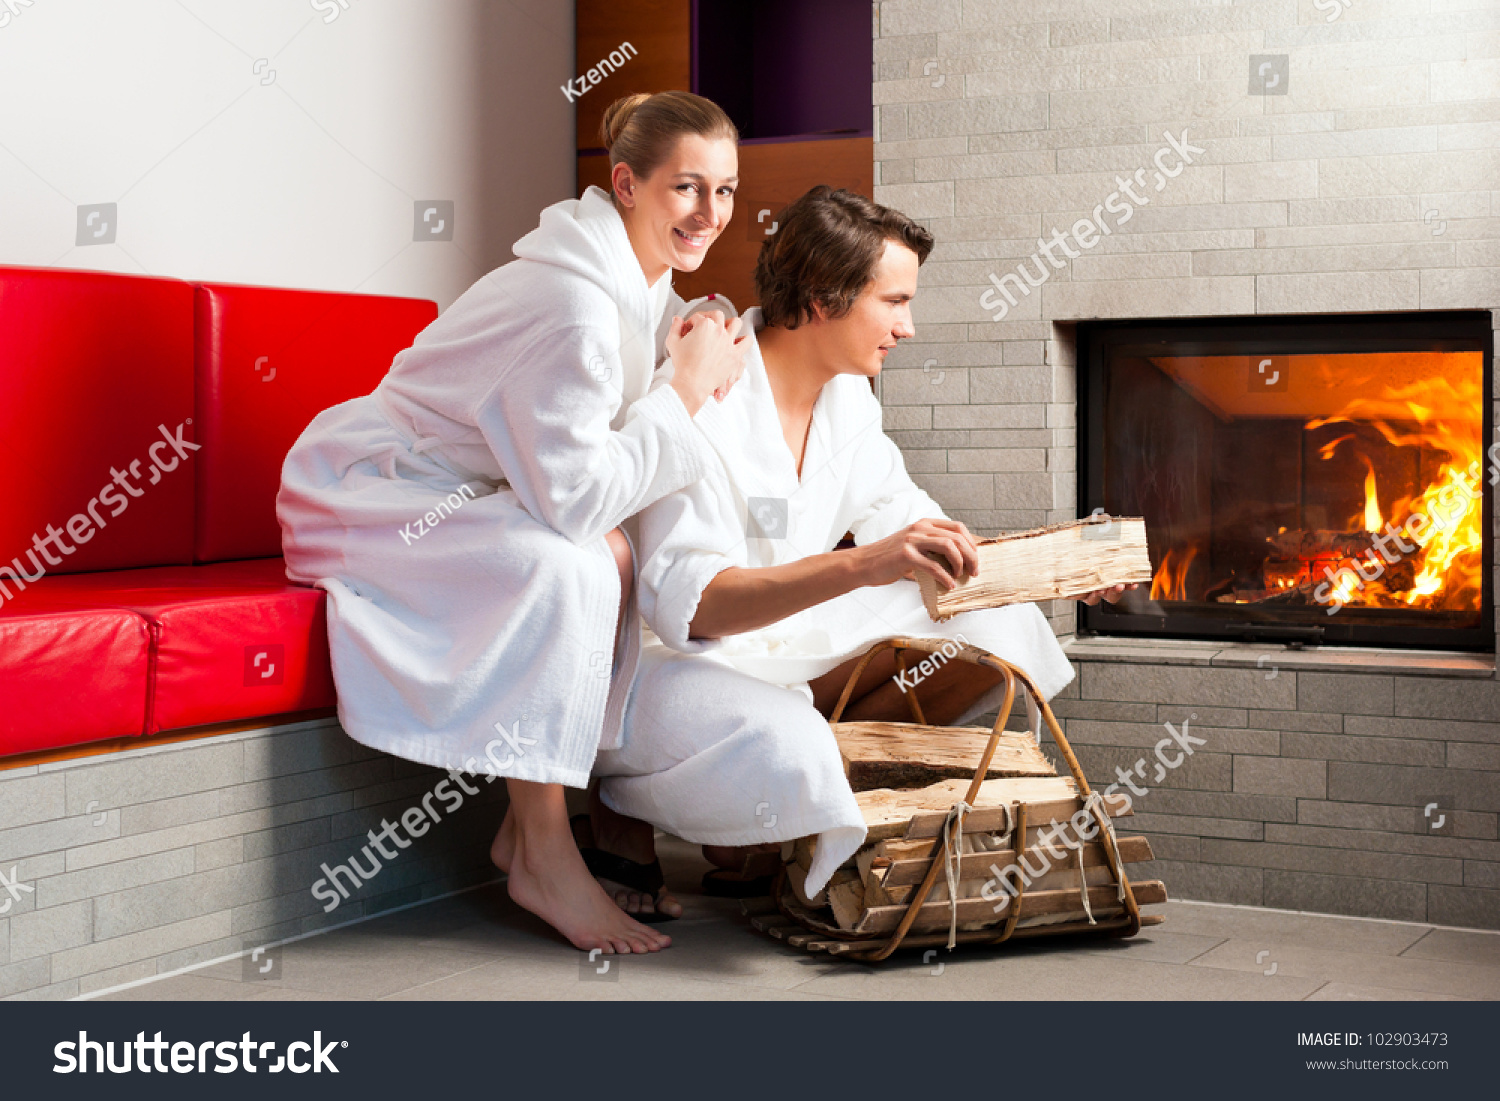 20e087656d Young Couple Sitting Bathrobe Open Fireplace Stock Photo (Edit Now ...